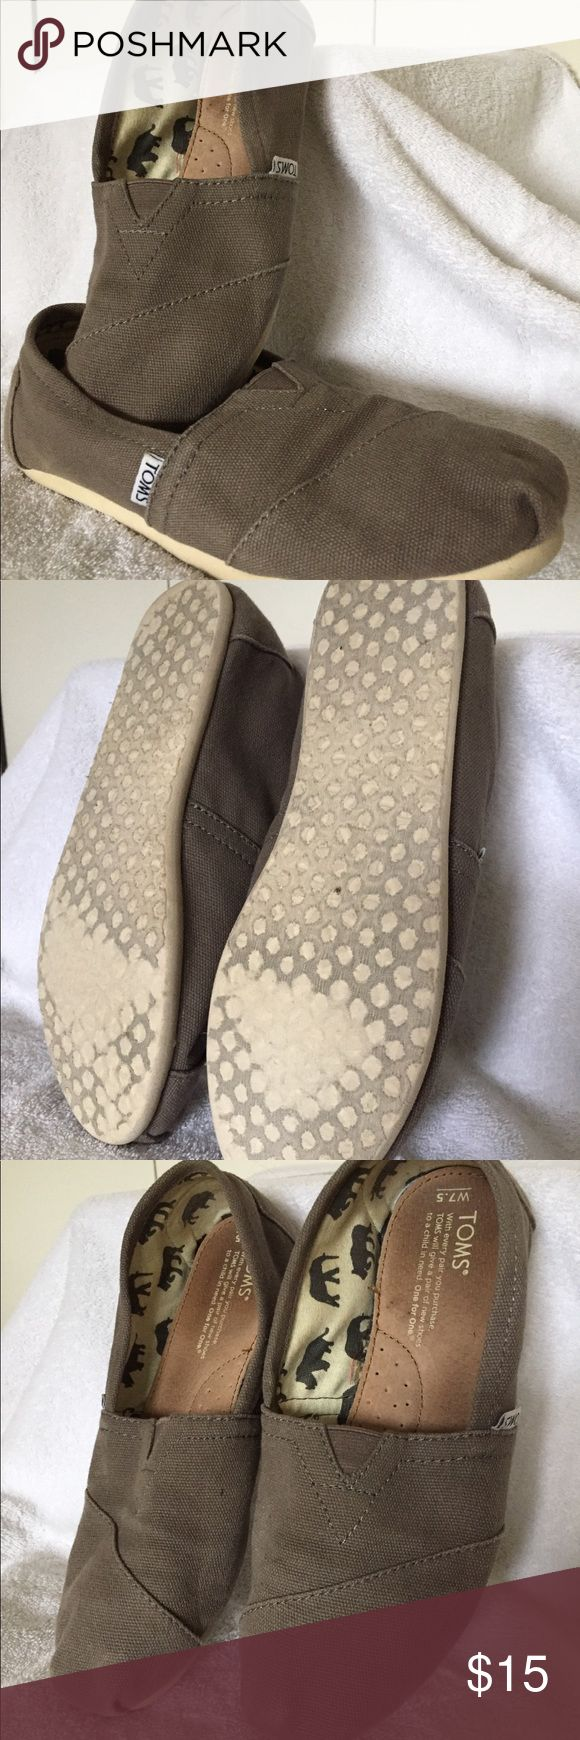 Classic gray TOMS. Classic gray TOMS were never worn barefoot—always worn with no-show socks.   Please note that the fabric near the toe is starting to thin (photographed) due to consistent wear. Toms Shoes Flats & Loafers